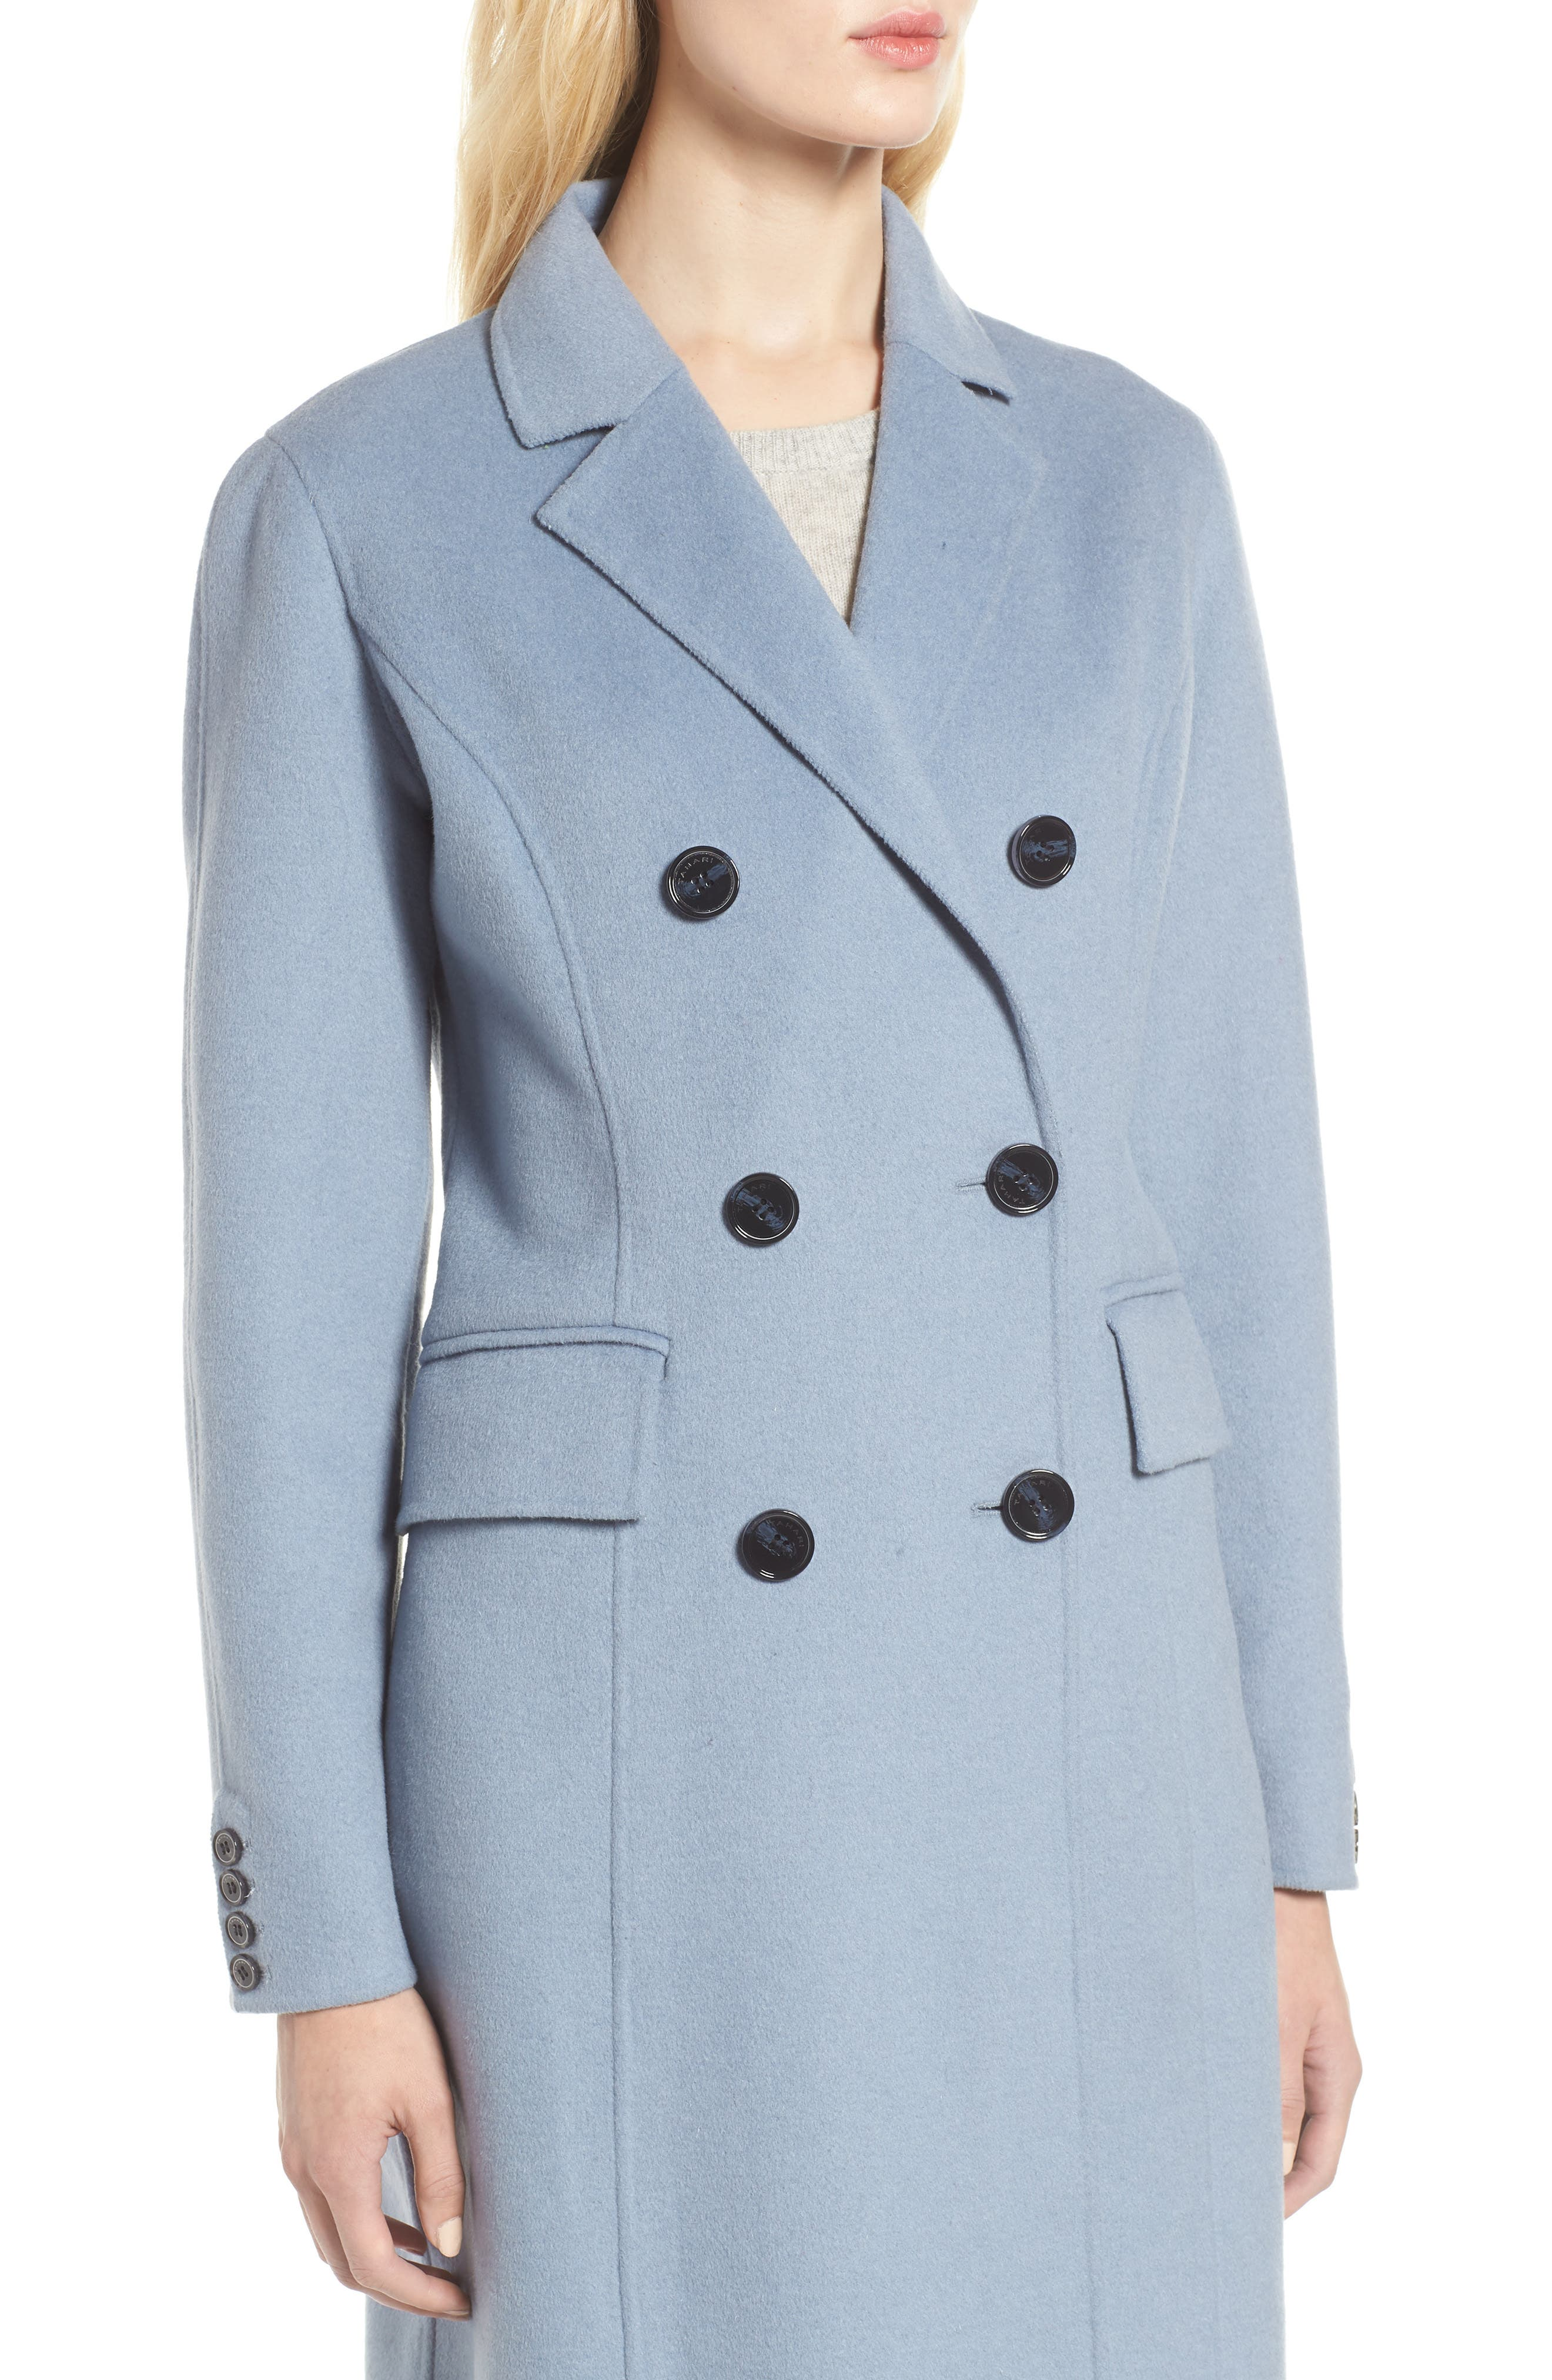 Taylor Double Breasted Wool Coat,                             Alternate thumbnail 4, color,                             PALE BLUE